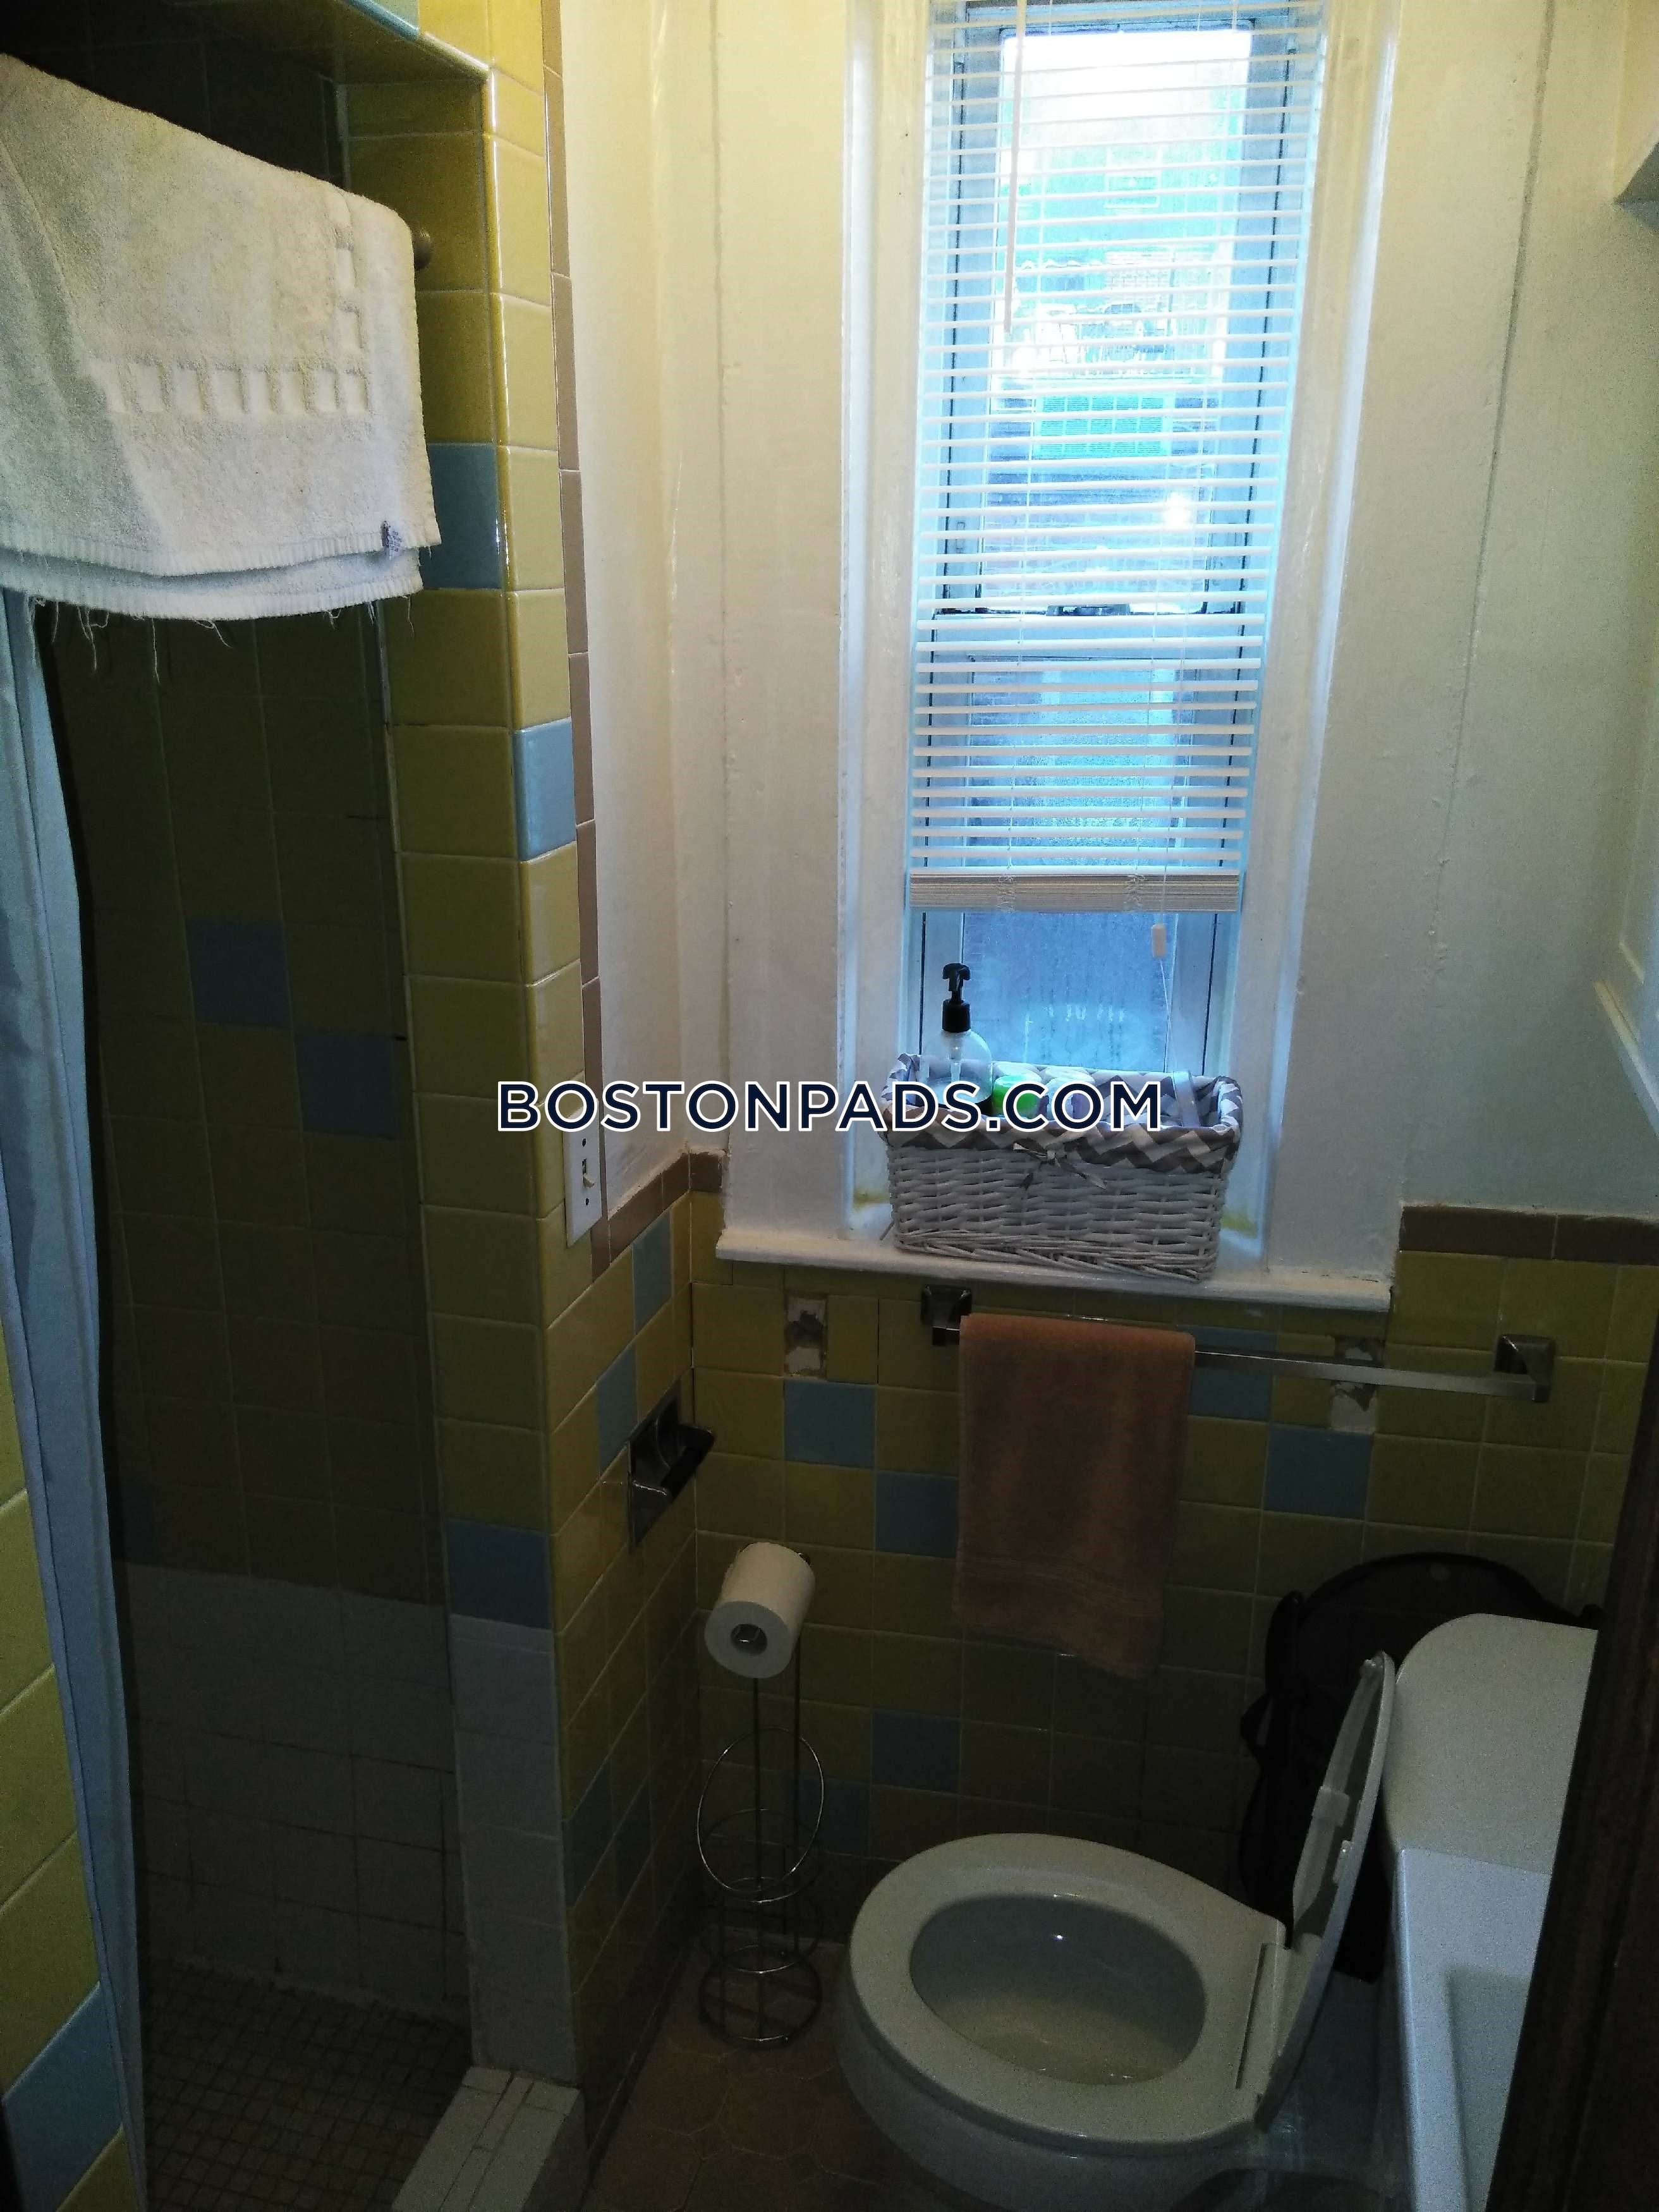 2 Beds 1 Bath  Boston  North End $2,400